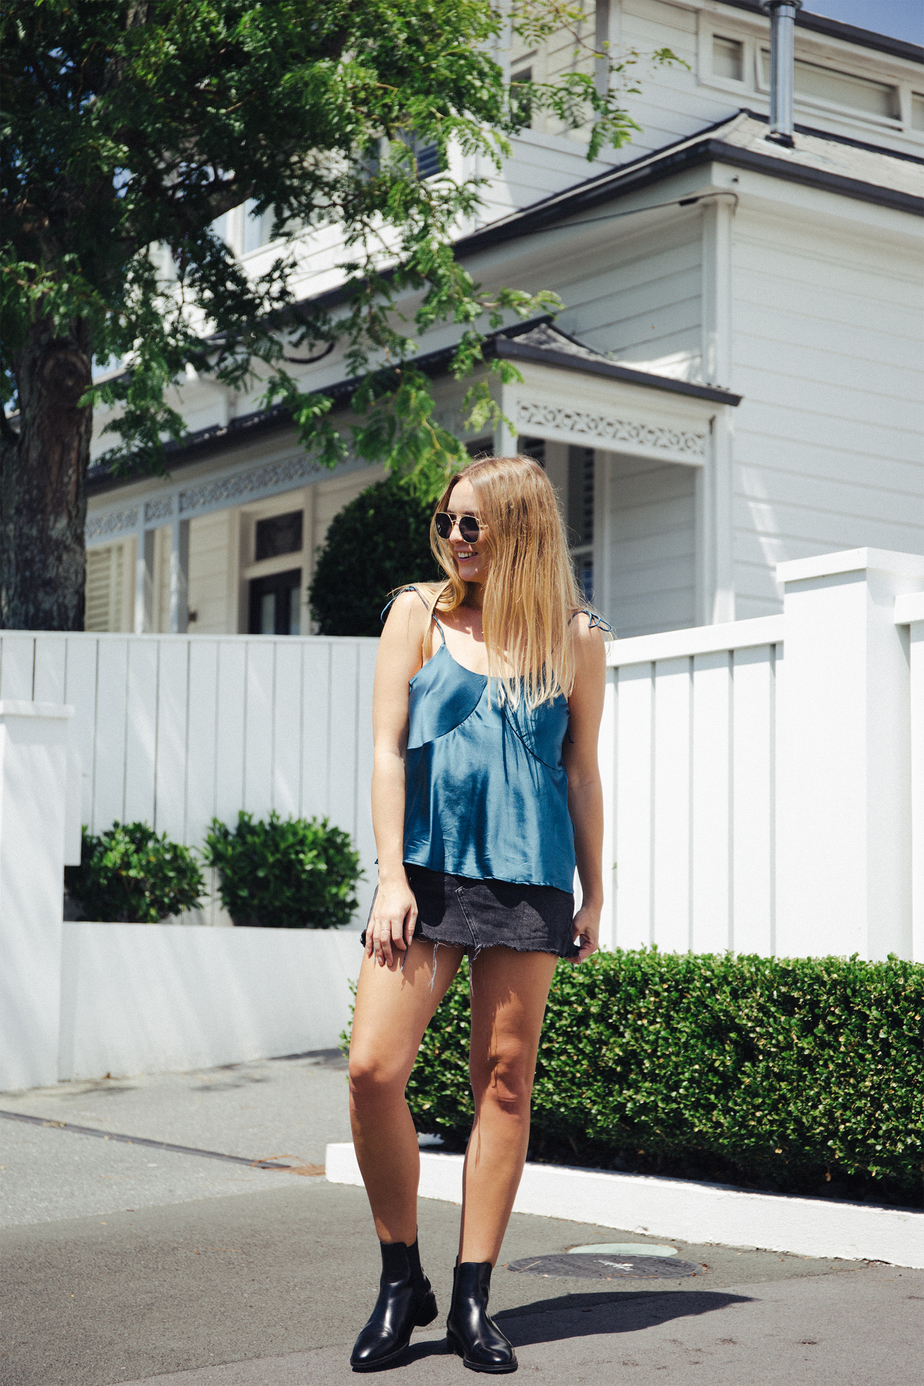 Ellis & Friends Bowie Top, BDG Denim Skirt, COS Boots, Shevoke Sunglasses | Stolen Inspiration | New Zealand Fashion Blog